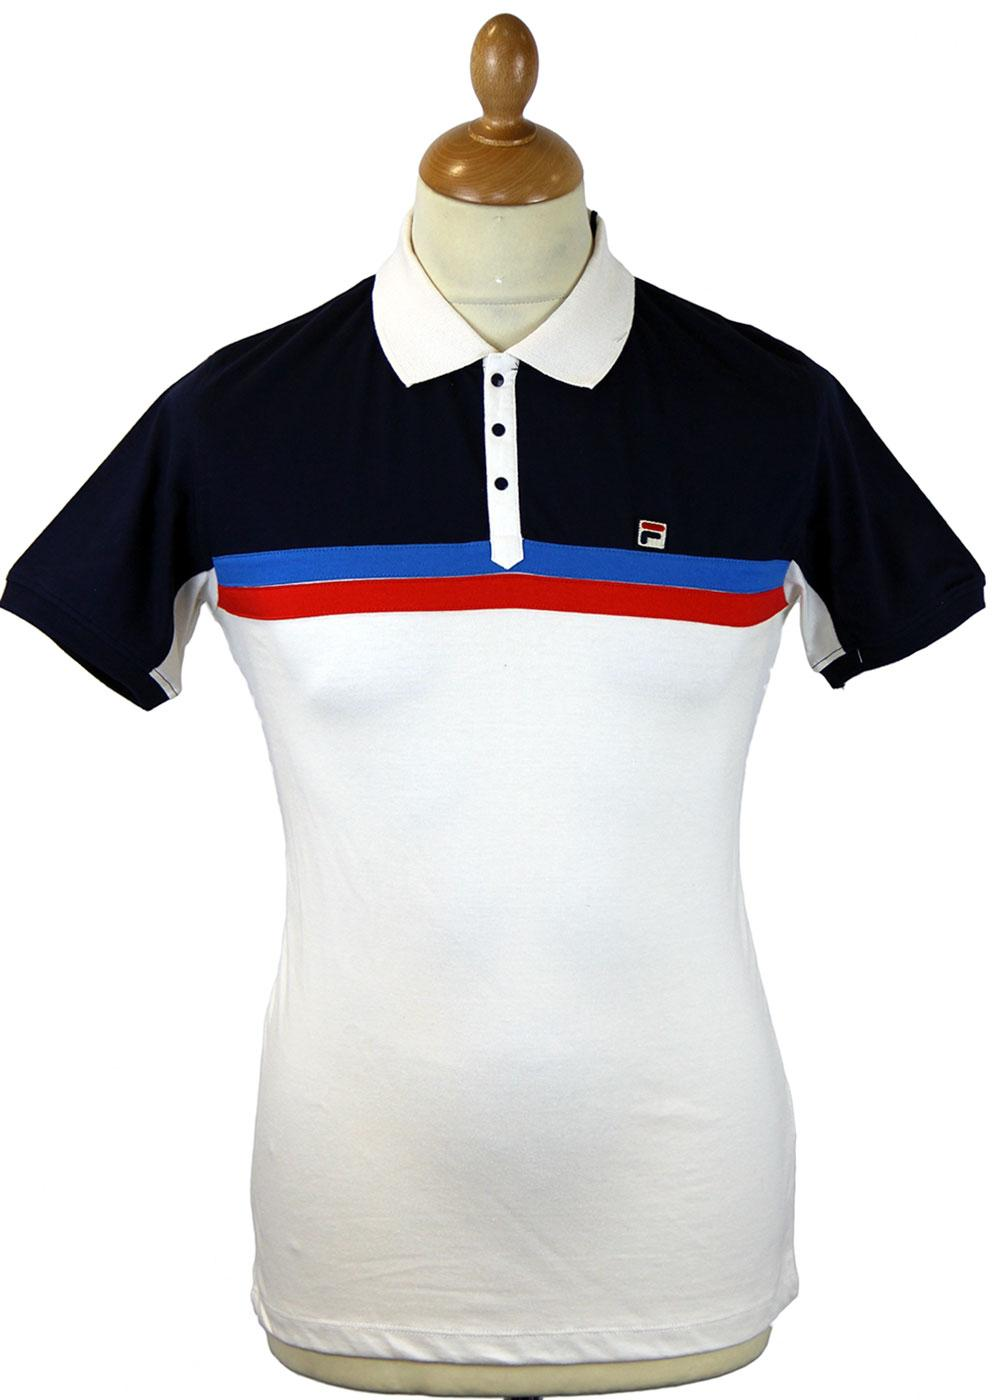 Nemesis FILA VINTAGE Retro Mod Stripe Panel Polo G